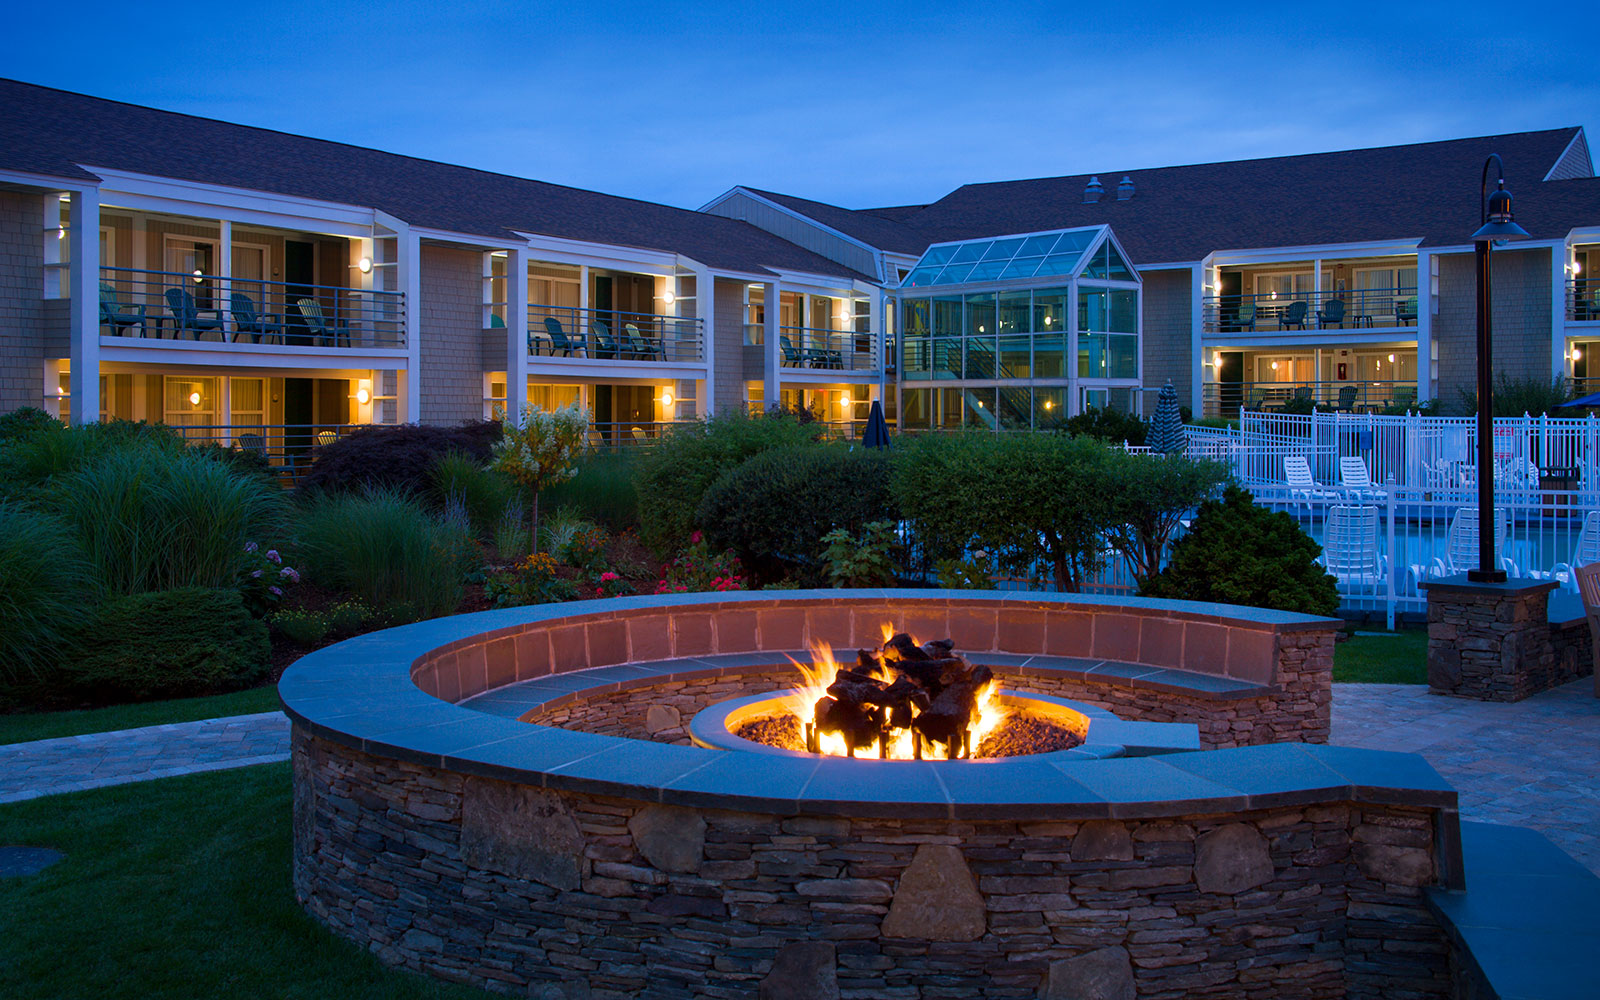 Cape Cod Hotels >> Luxury Cape Cod Waterfront Hotel - Hyannis Harbor Hotel